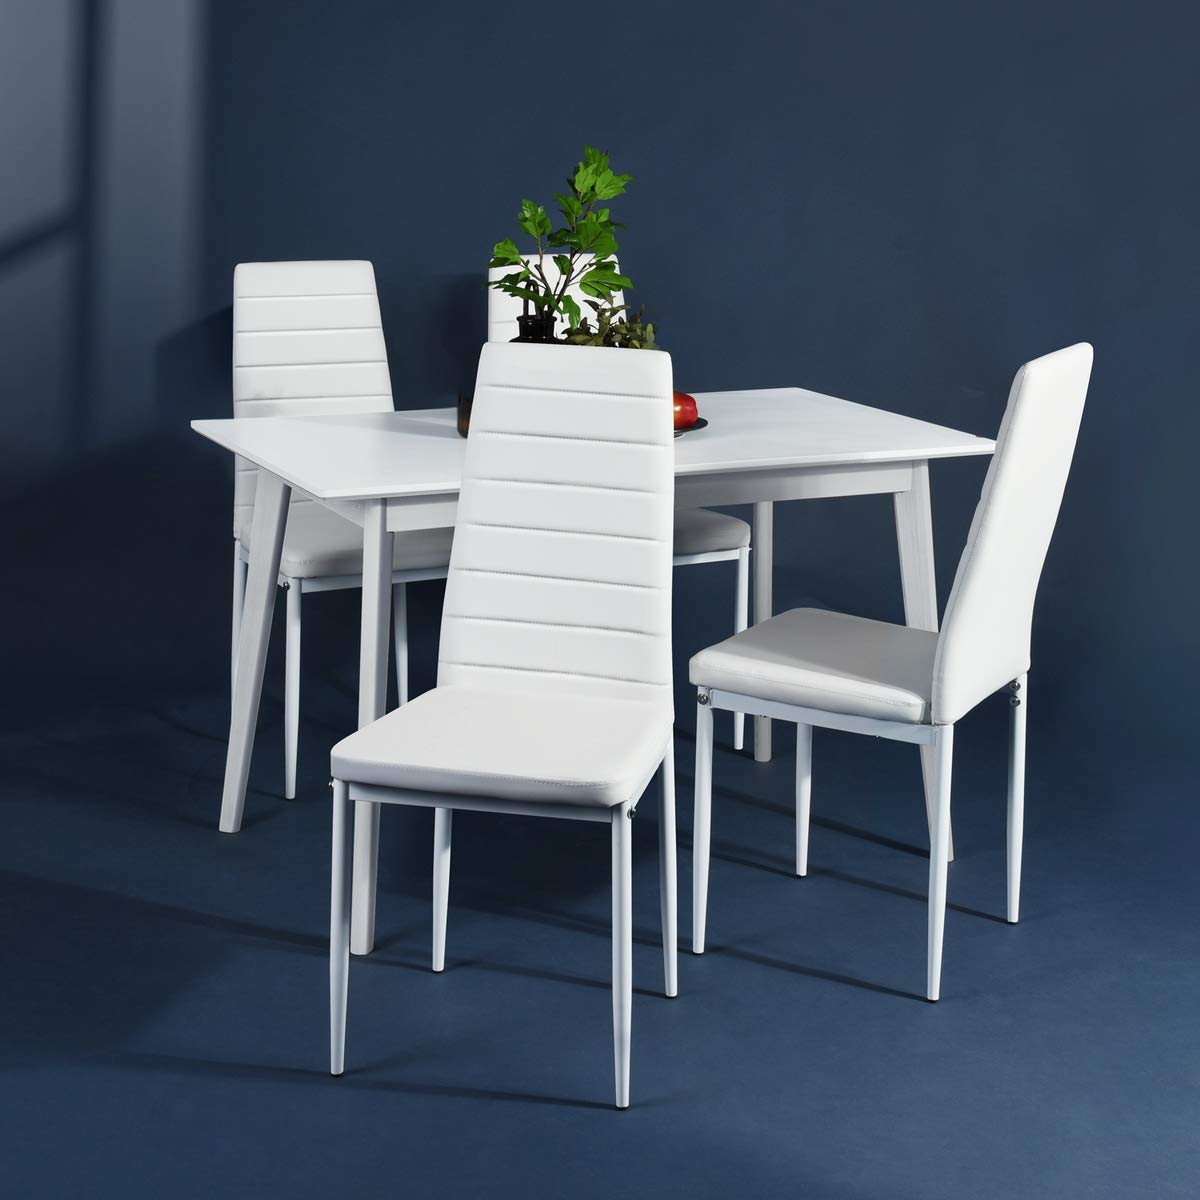 Aingoo White Kitchen Chairs Set of 4 Dining Chair Black with Steel Frame High Back PU Leather by Aingoo